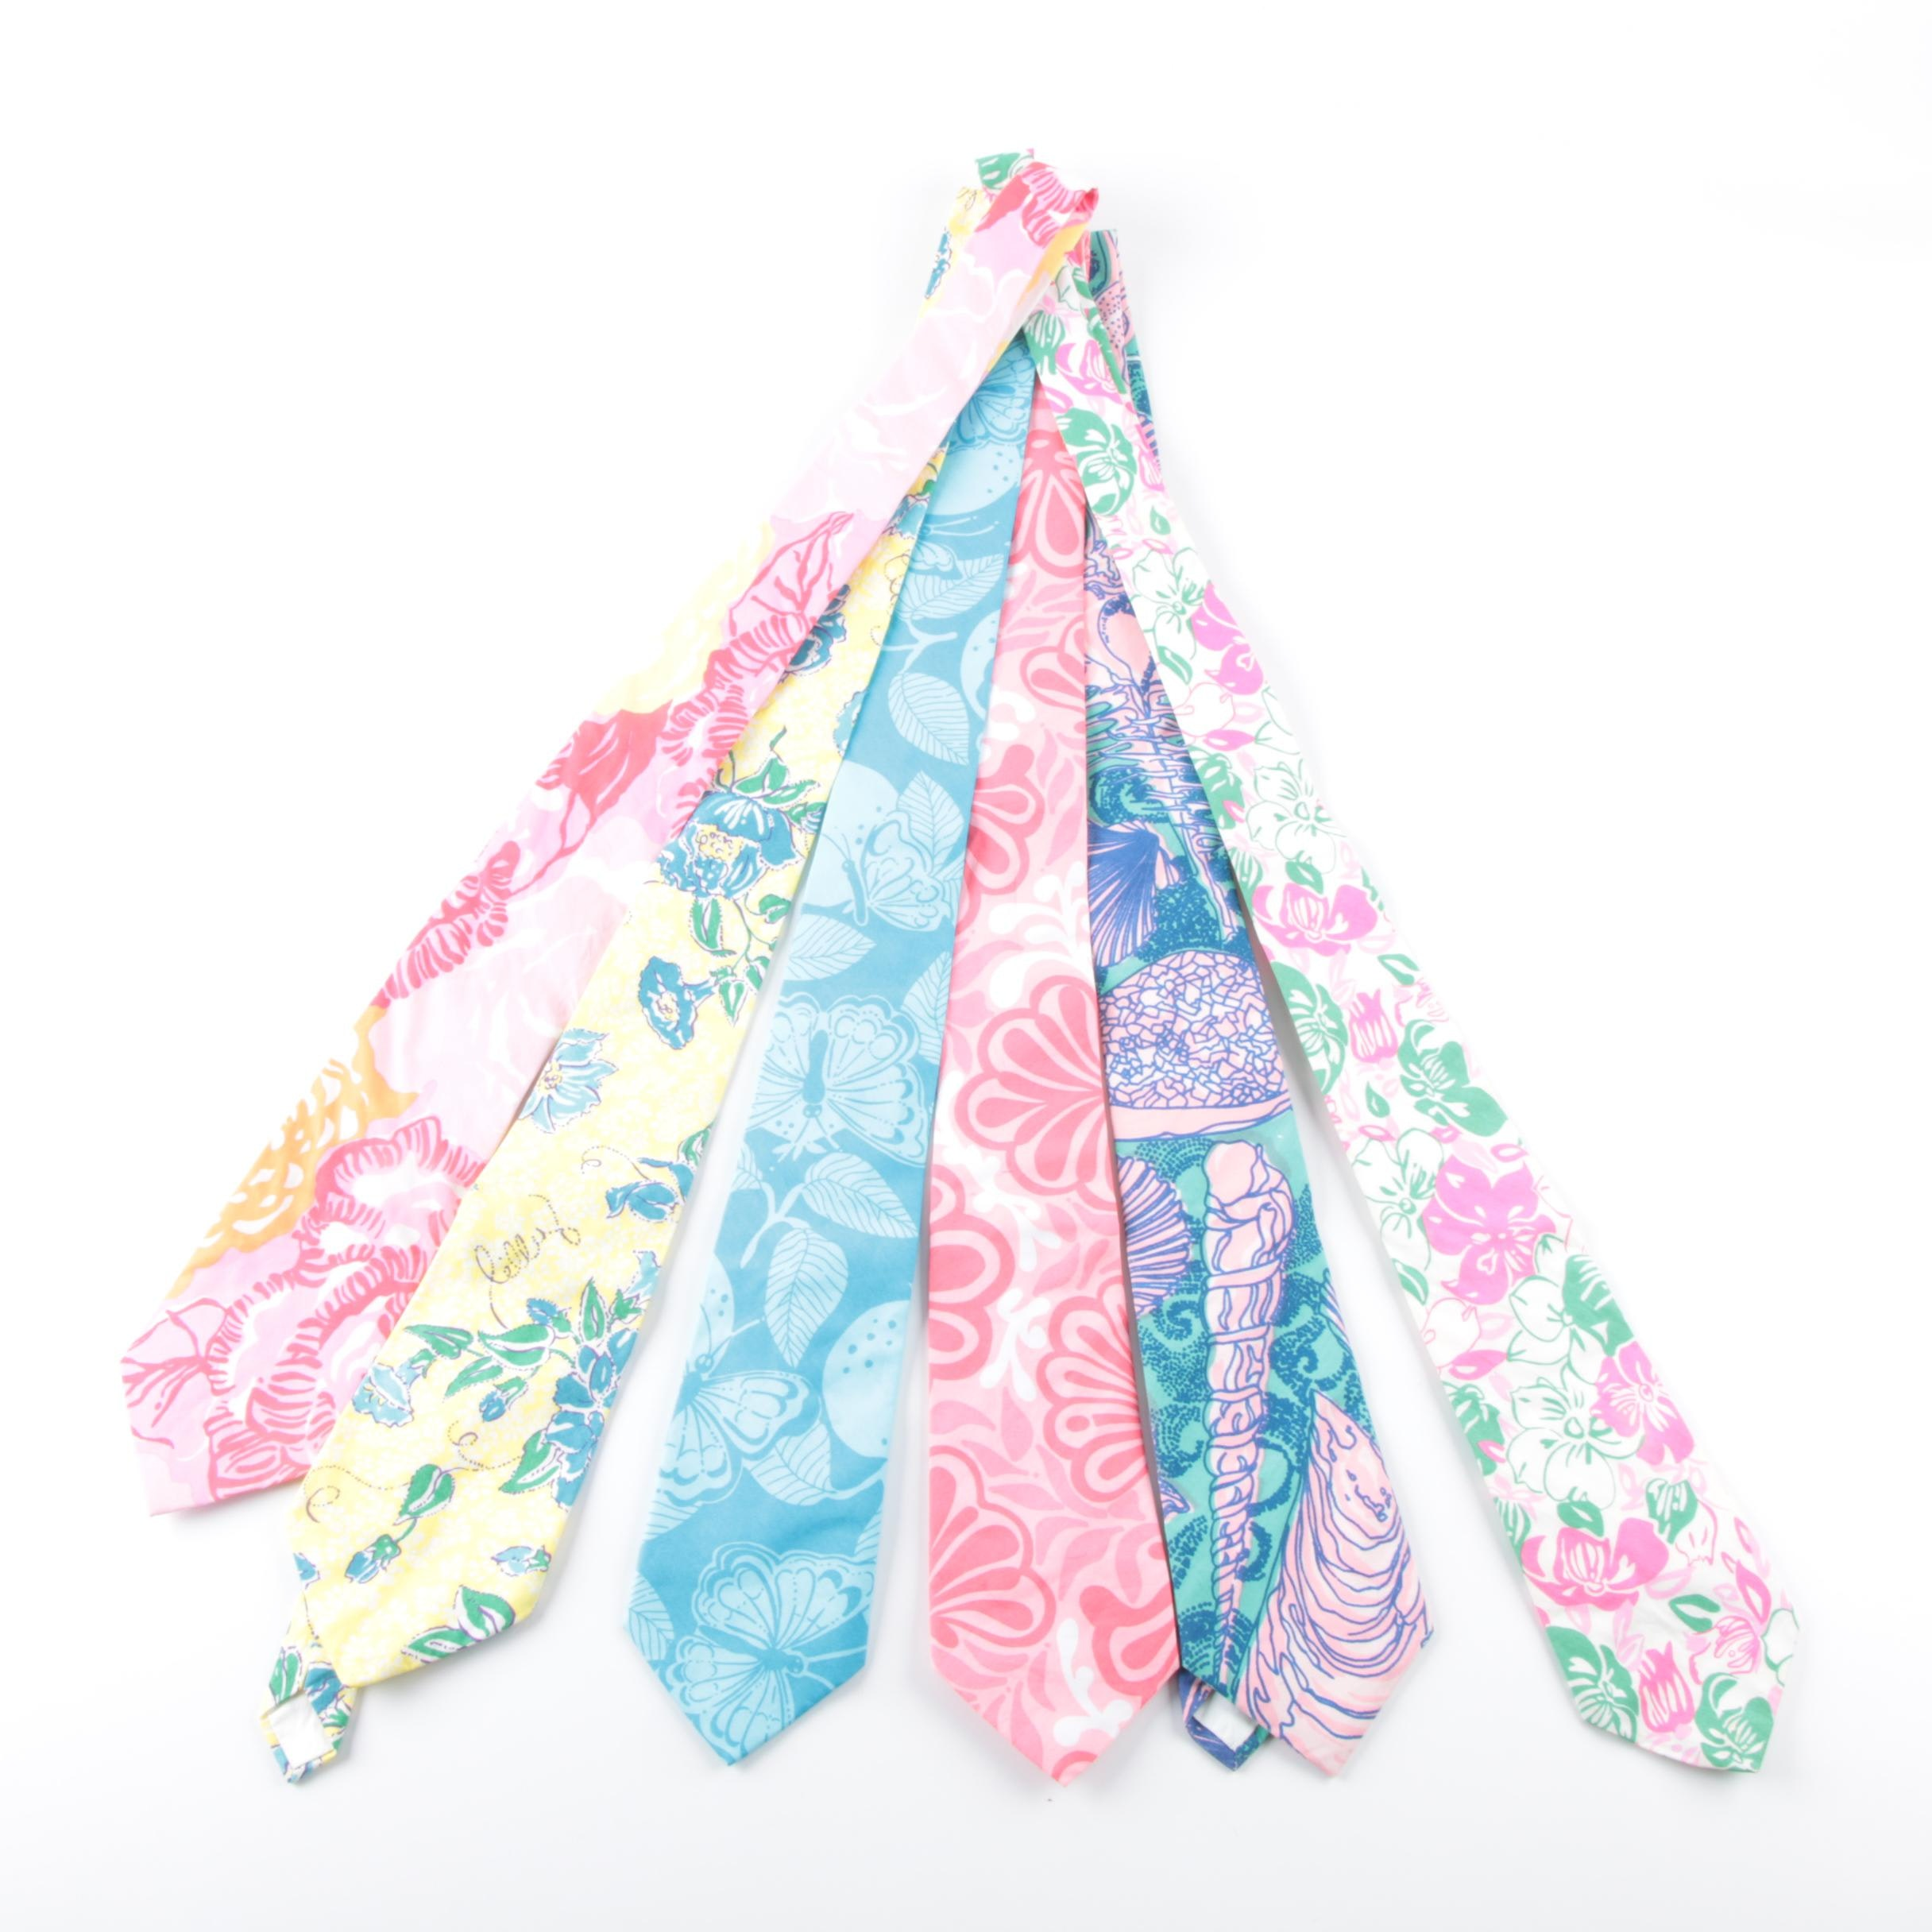 Lilly Pulitzer and Key West Fabrics Printed Cotton Neckties